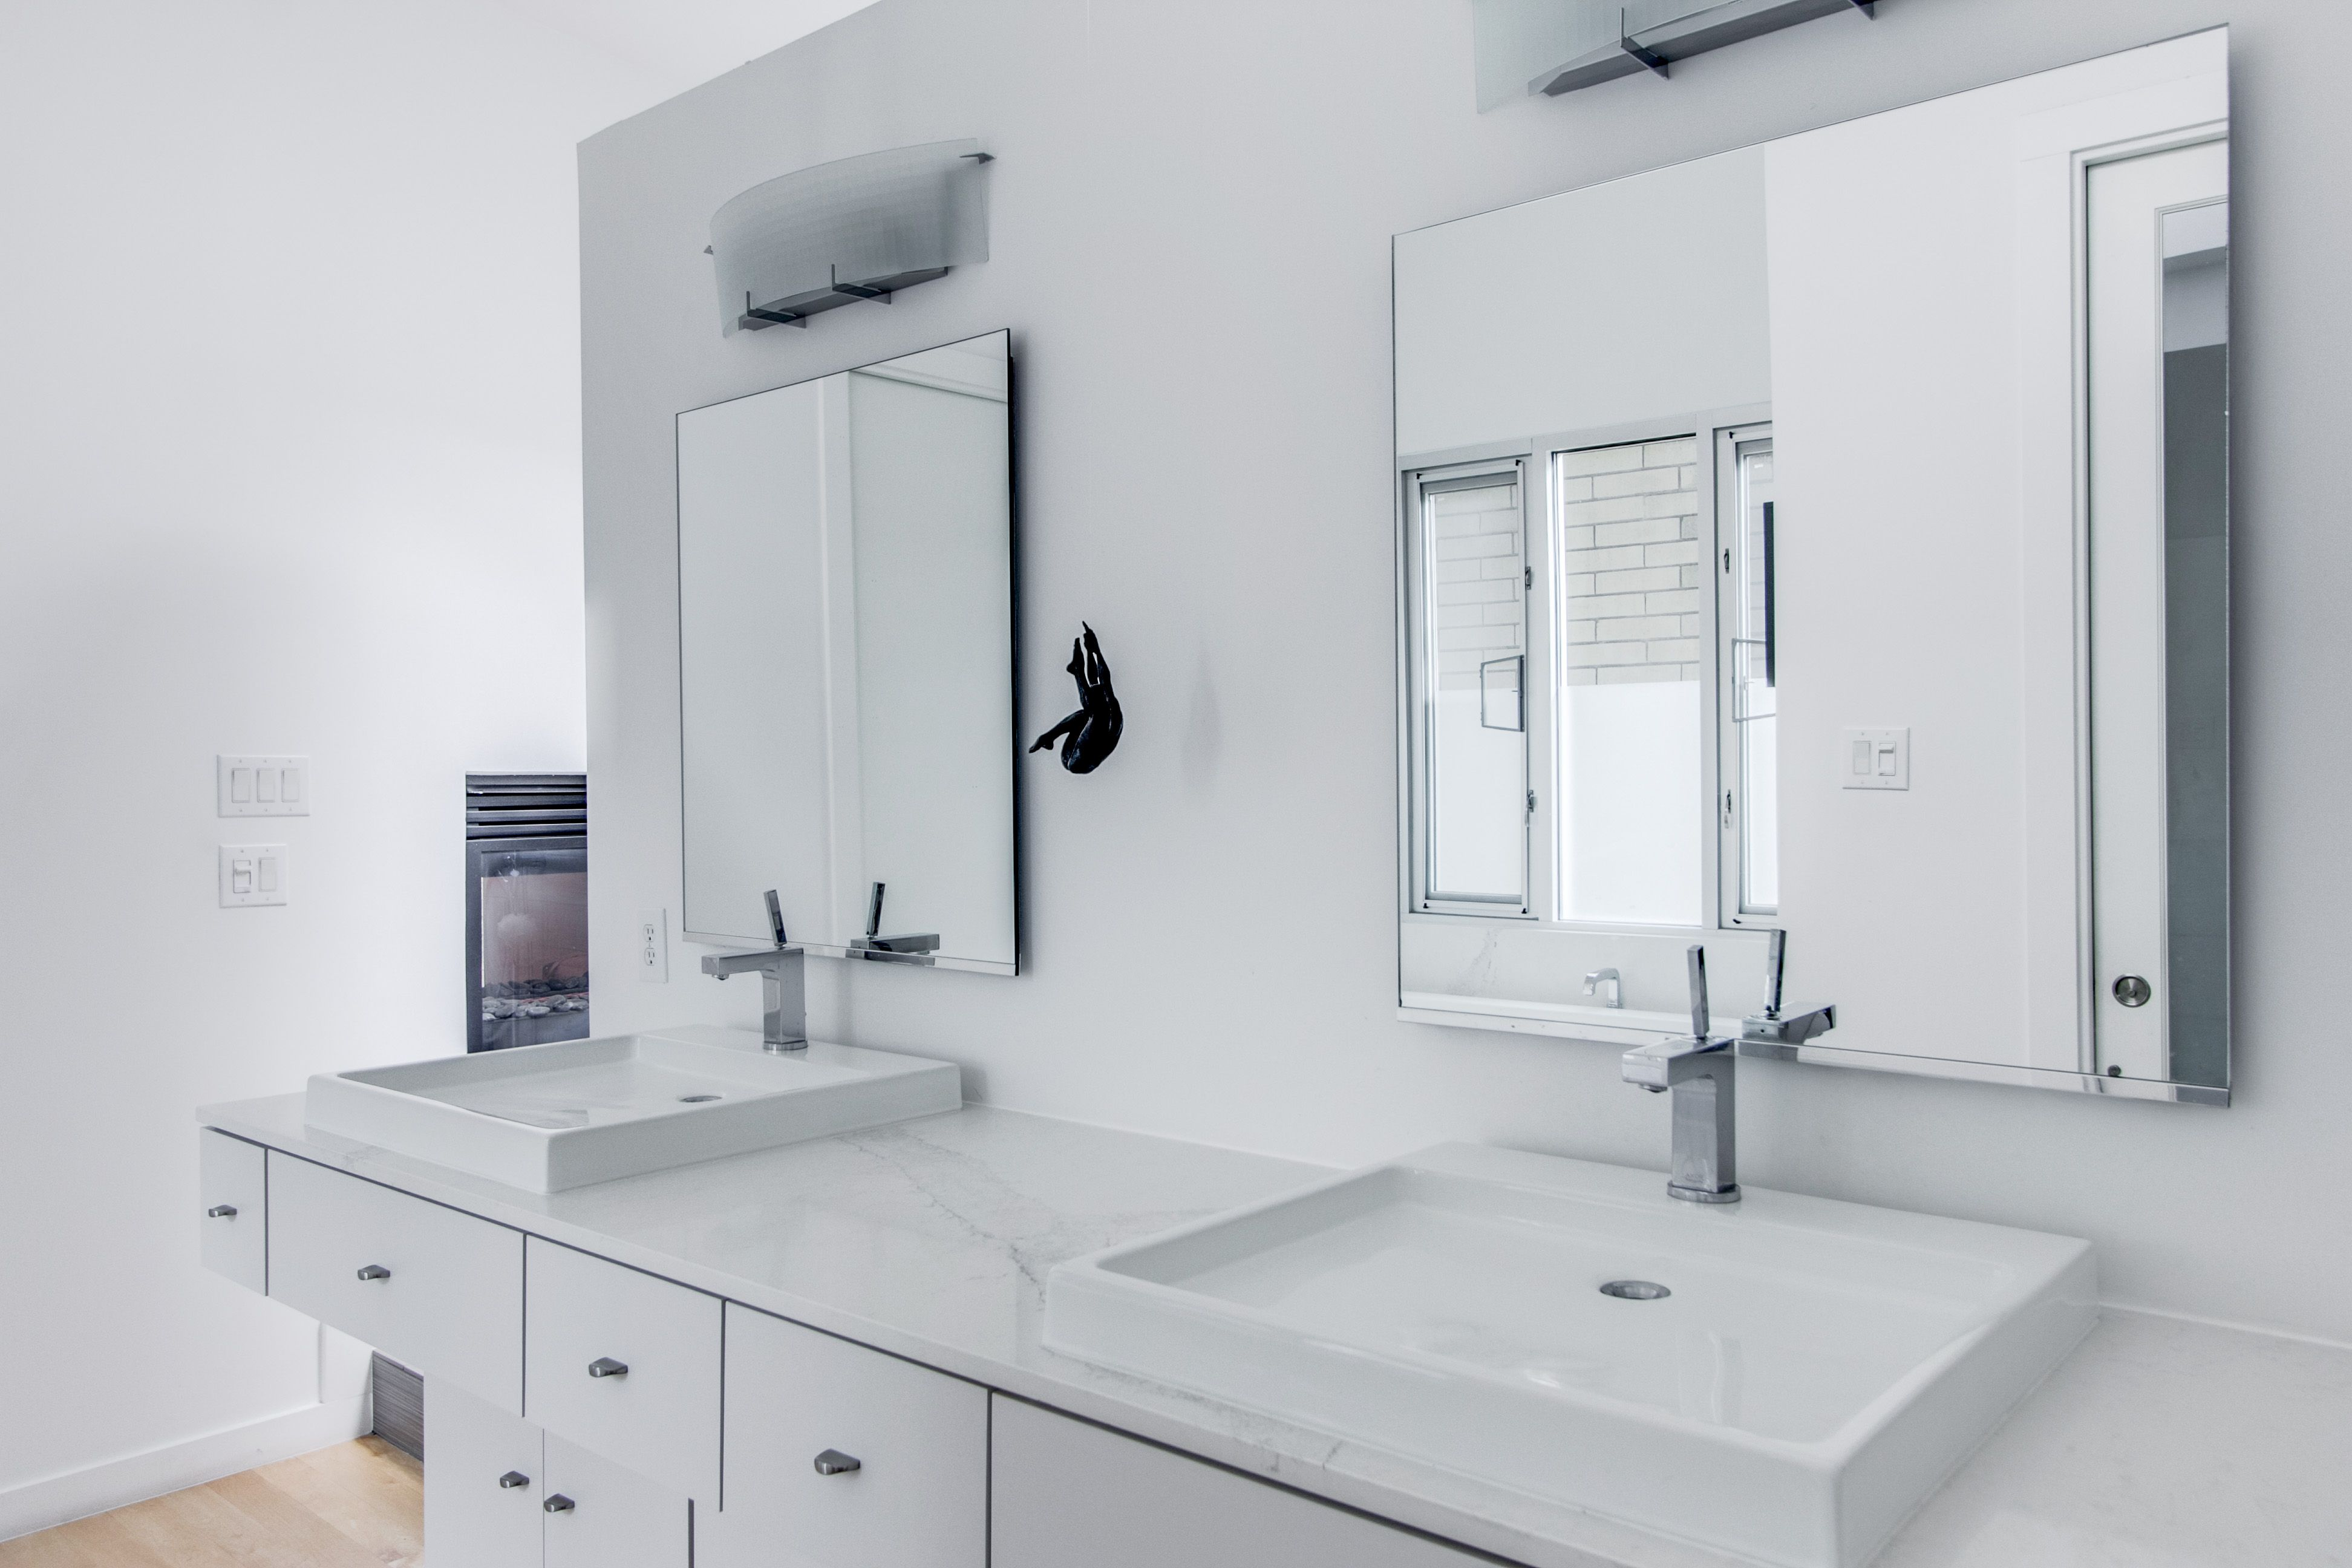 To give this bathroom a clean updated look, we refaced the cabinets ...